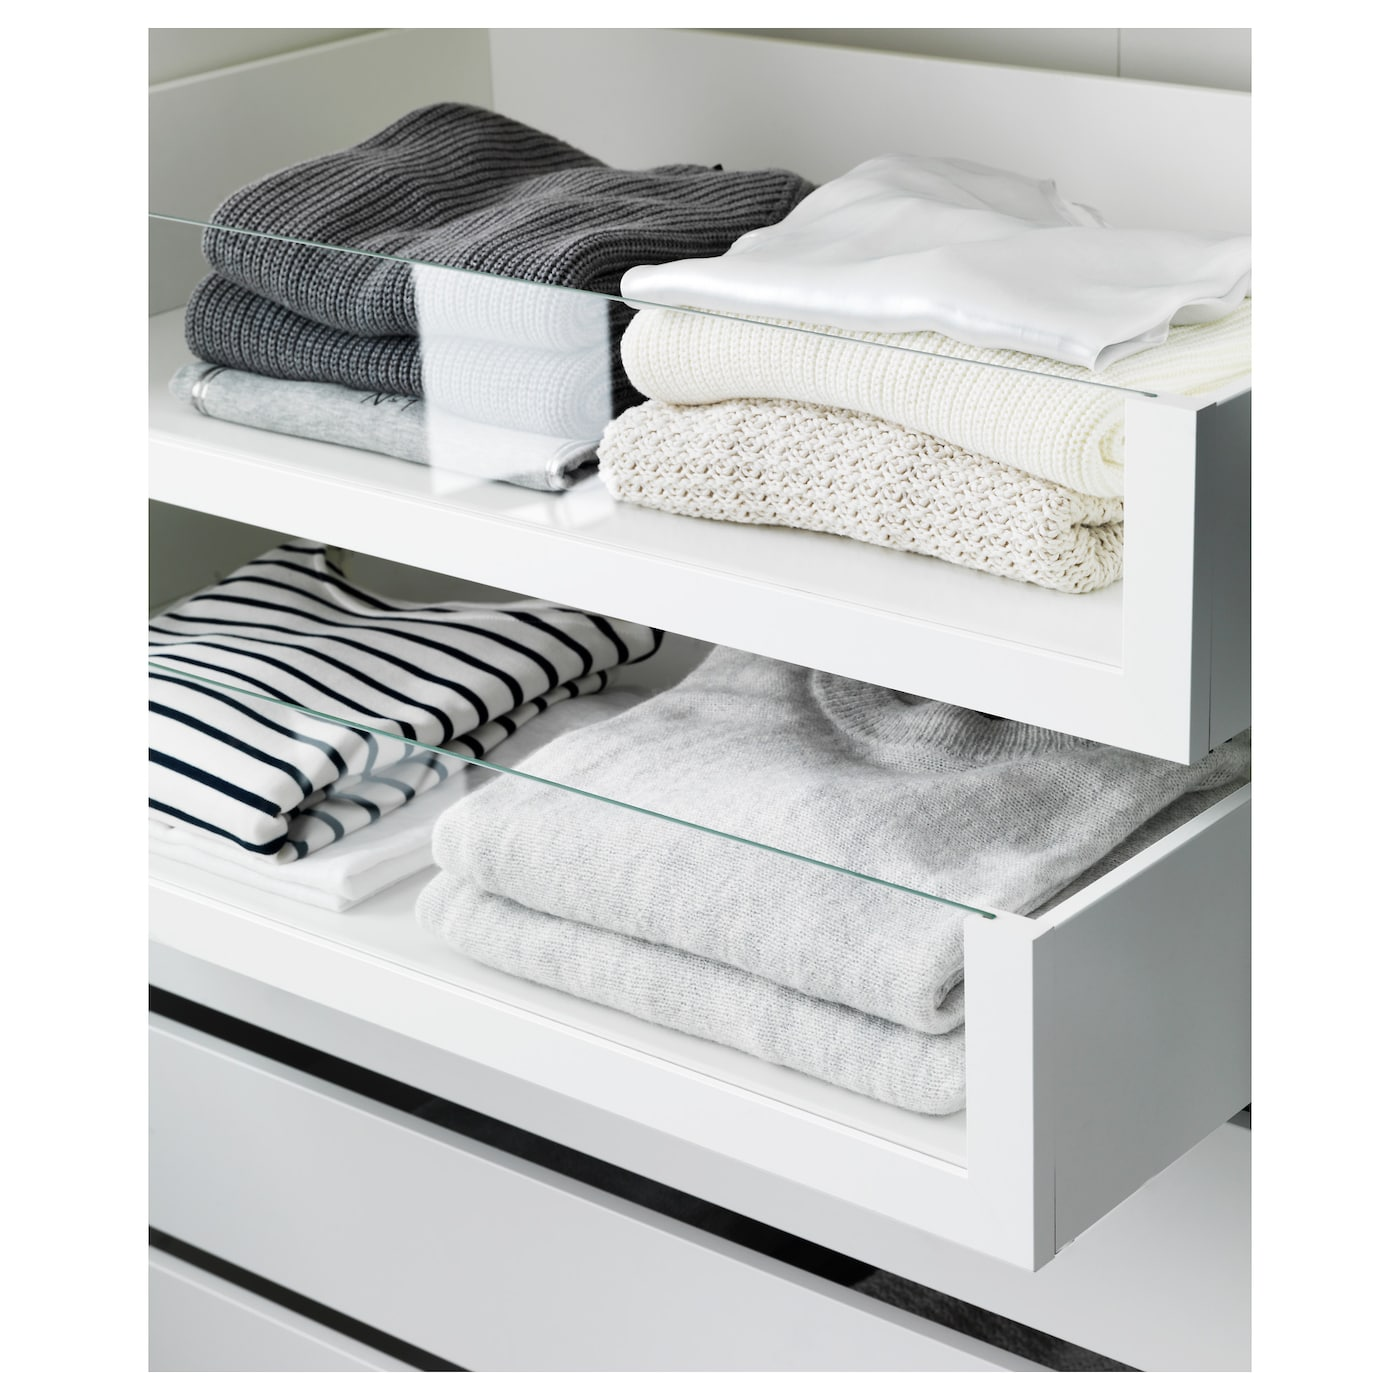 komplement drawer with glass front white 75x58 cm ikea. Black Bedroom Furniture Sets. Home Design Ideas